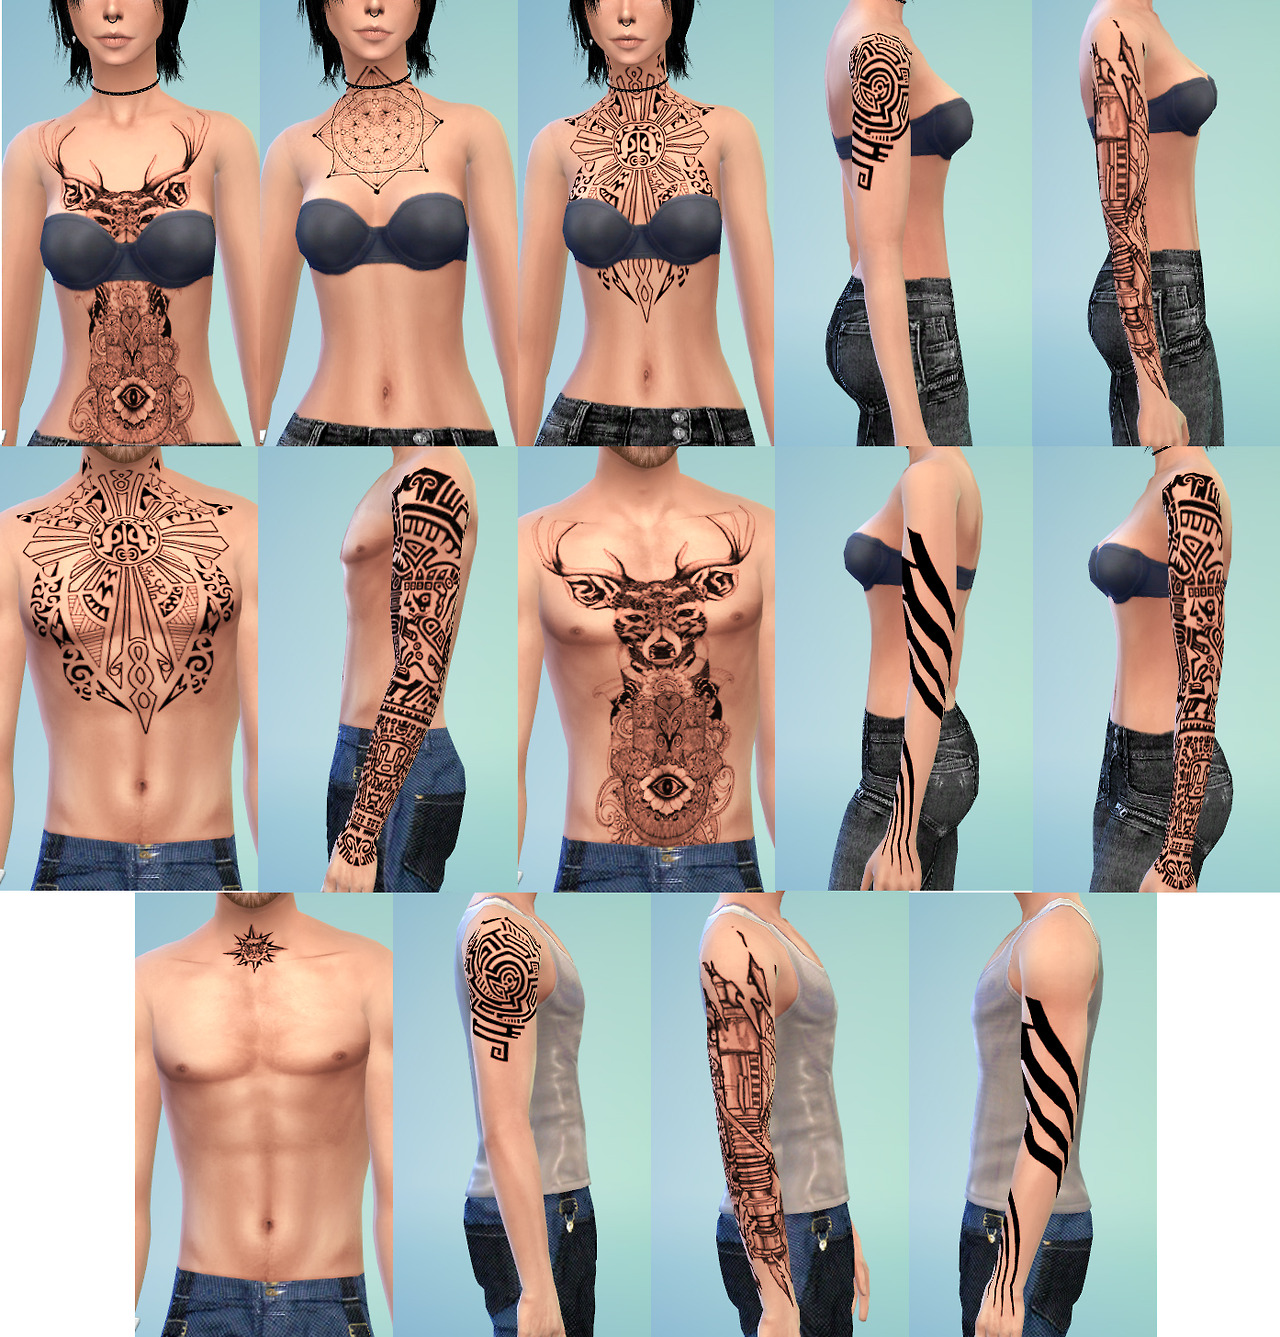 RANDOM TATTOO SET #3 at Onelama